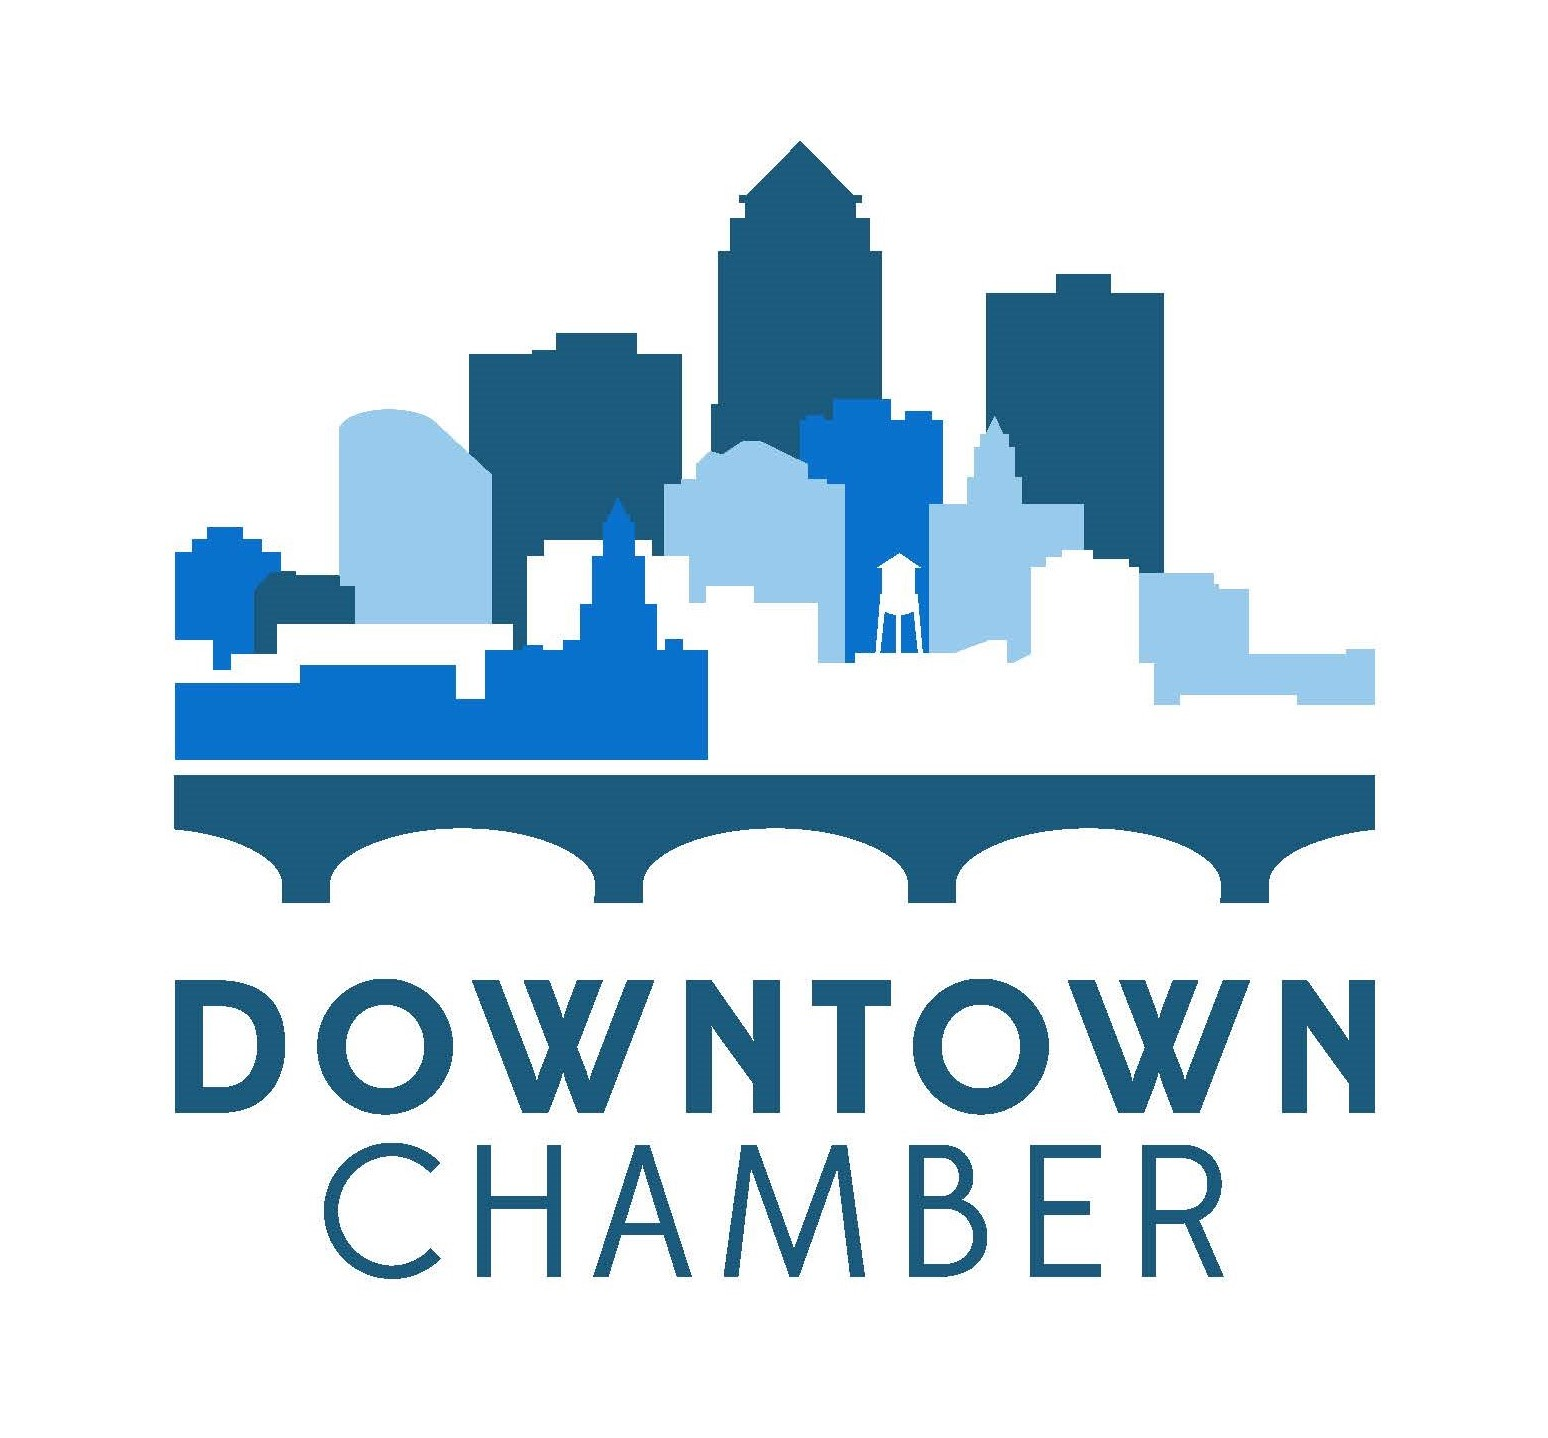 Downtown Chamber logo